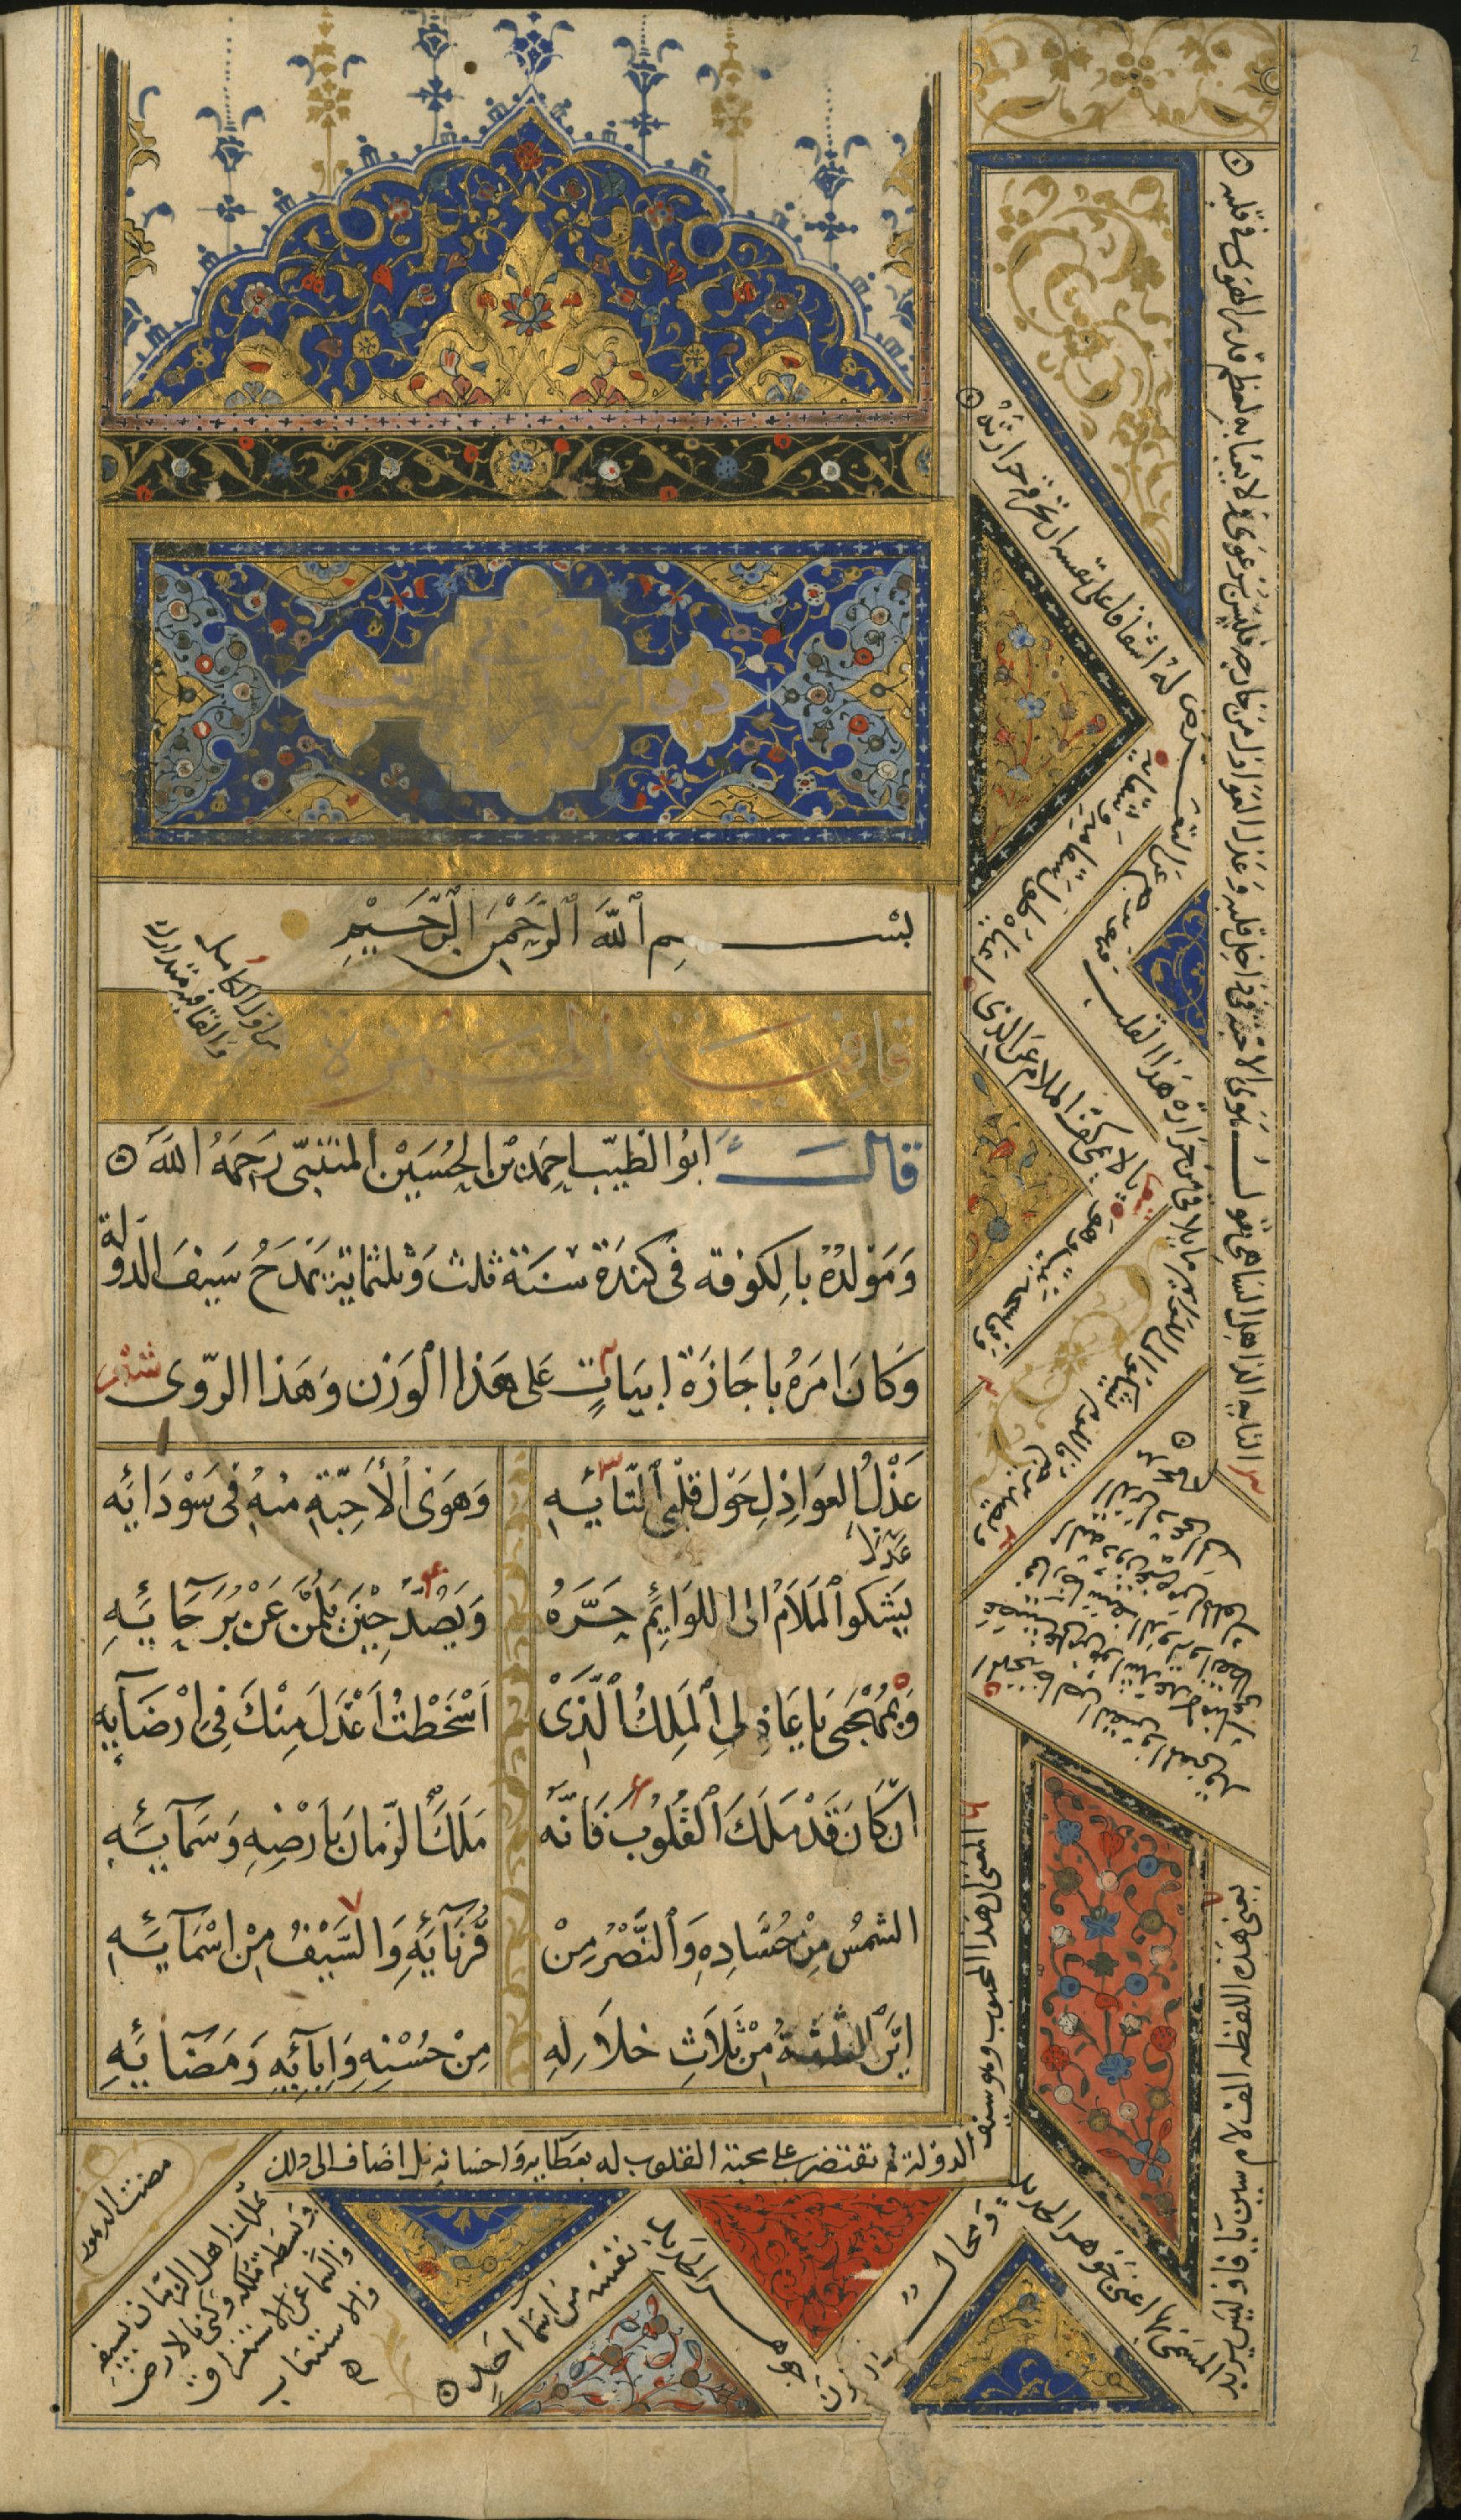 illuminated manuscript page with decoration in gold, blue and other colors framing text in Arabic script